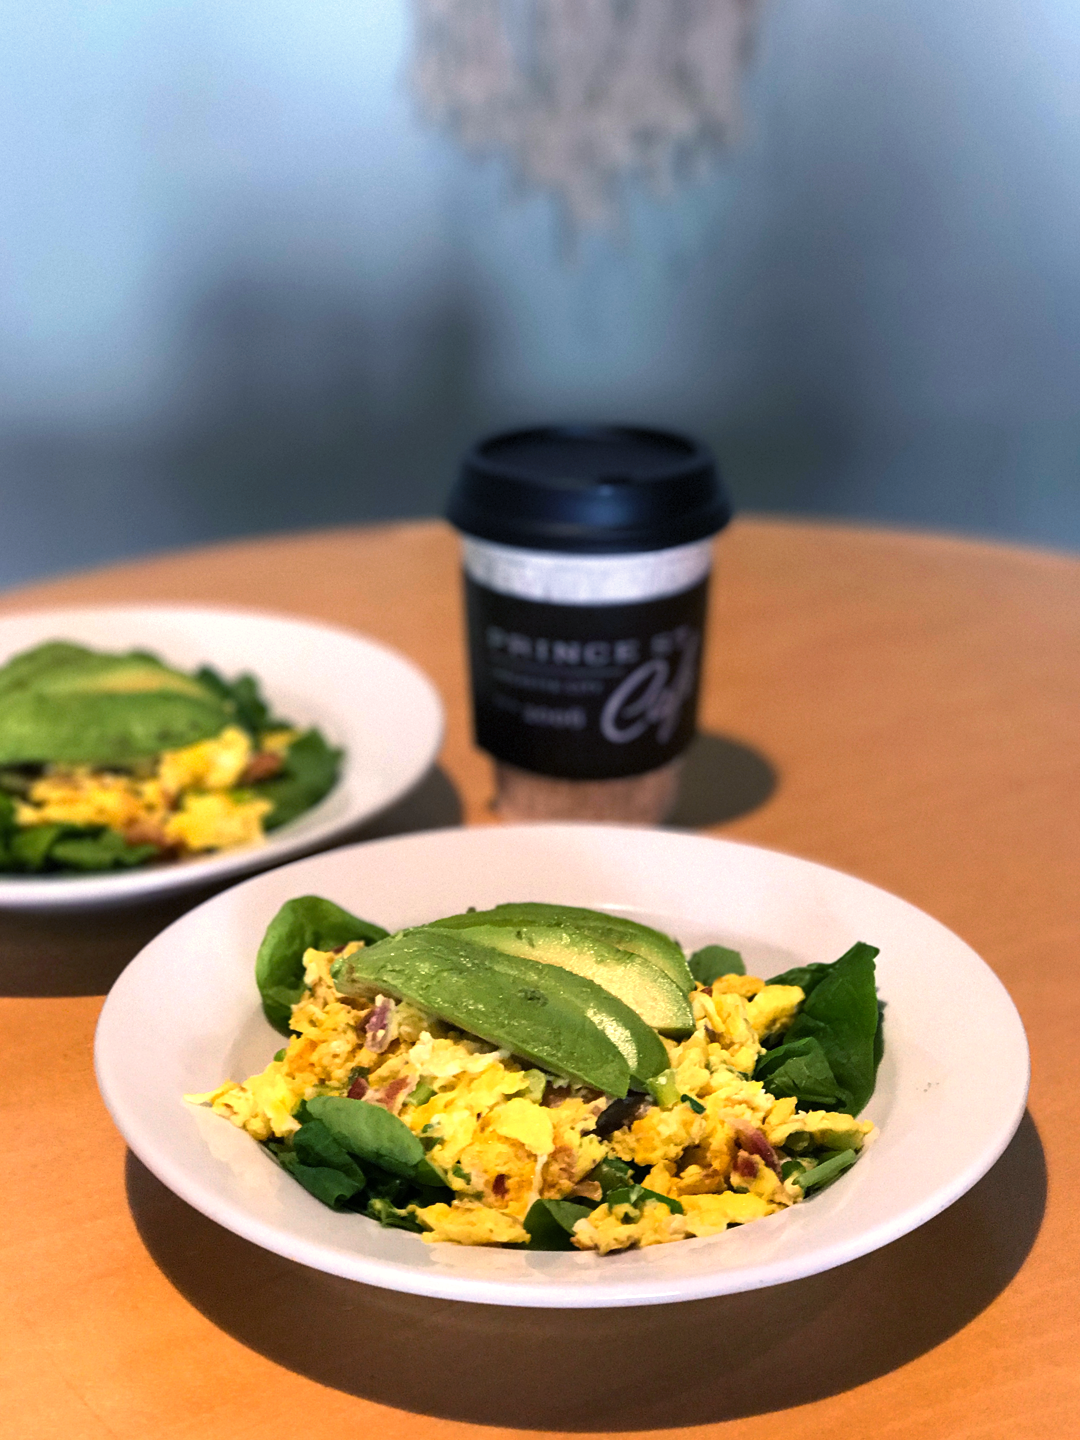 Seasonal Scramble from Prince St. Cafe. Scrambled eggs with bacon, scallions, and avocado on a bed of spinach. So good!